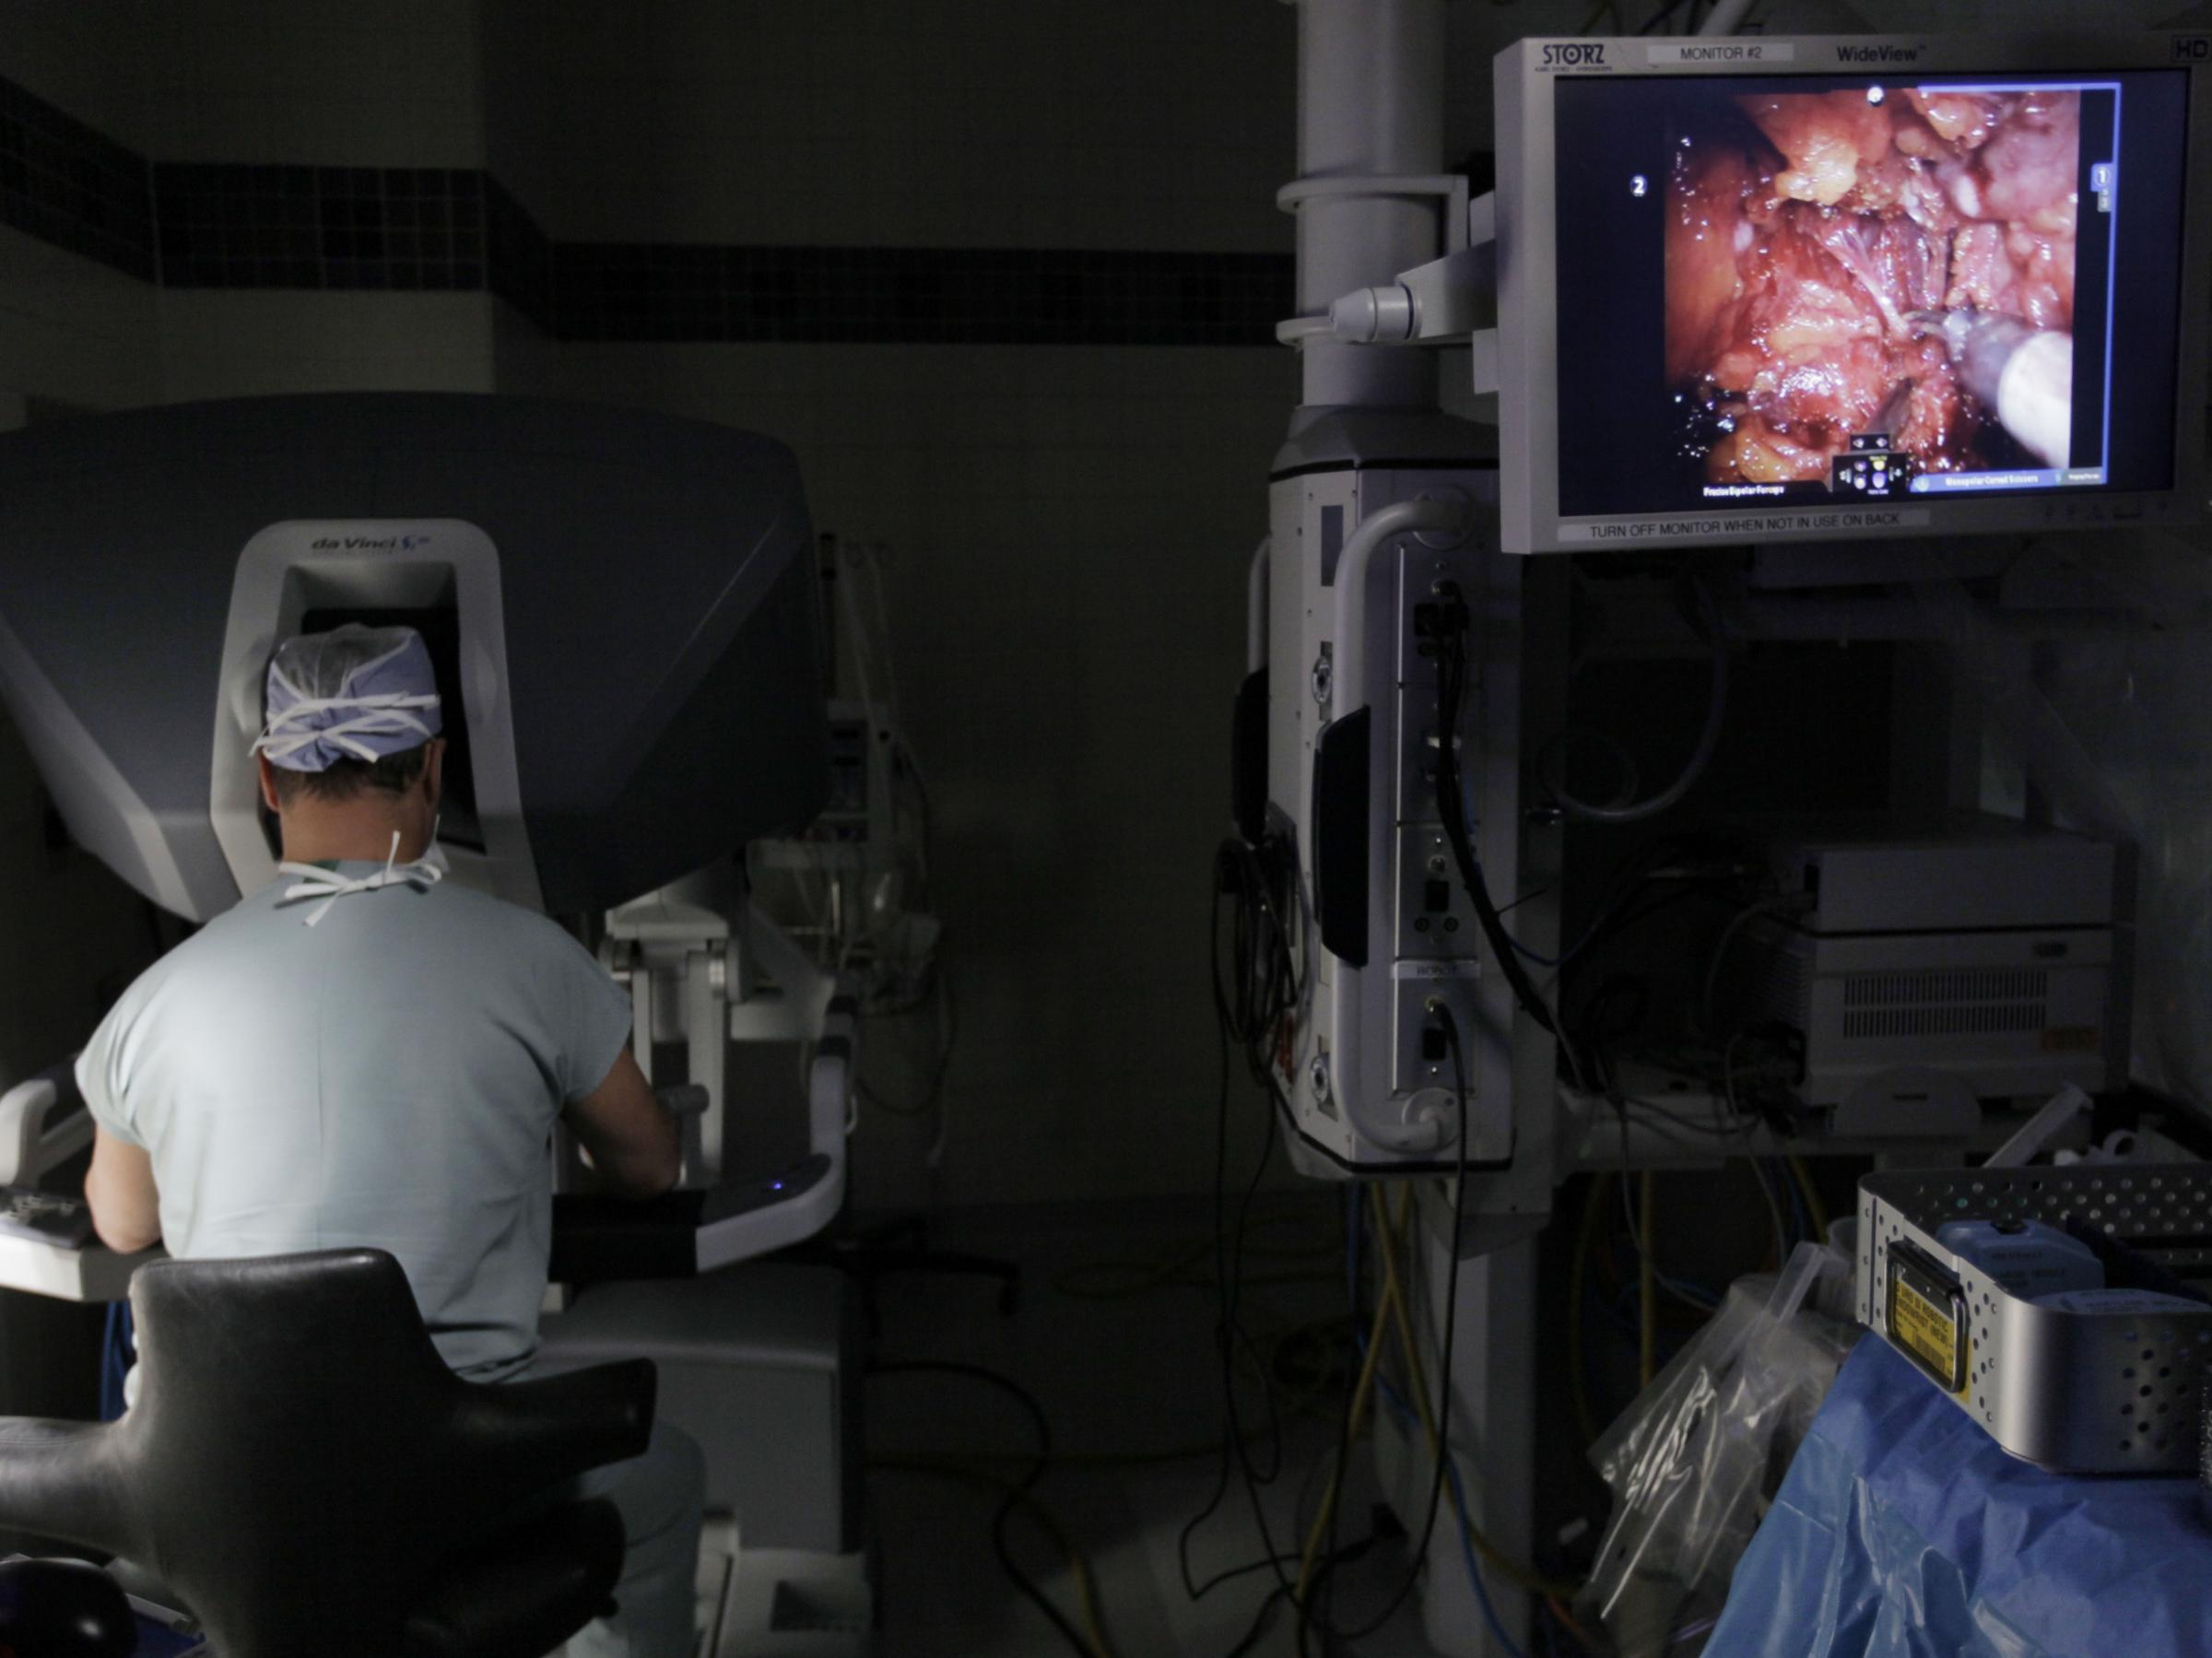 New Robot Performs Prostate Cancer Surgery